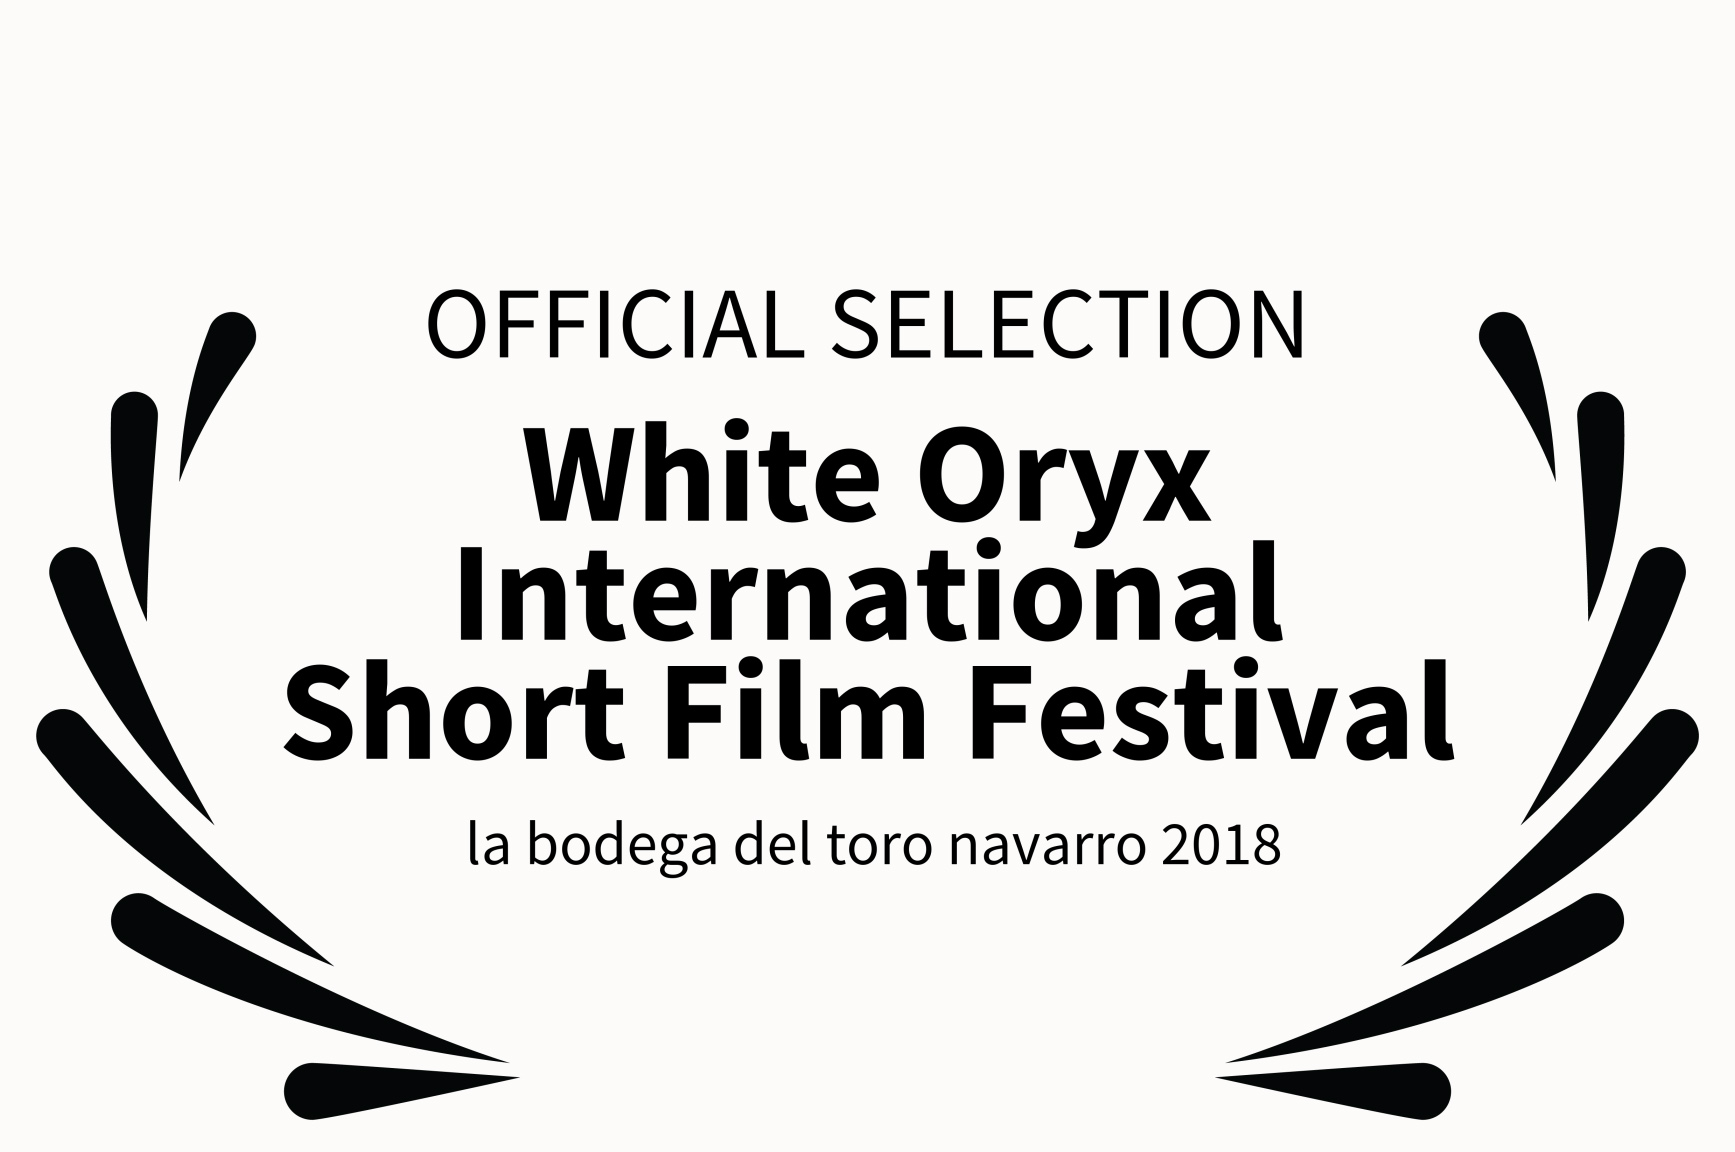 White Oryx International Short Film Festival -  la bodega del toro navarro 2018